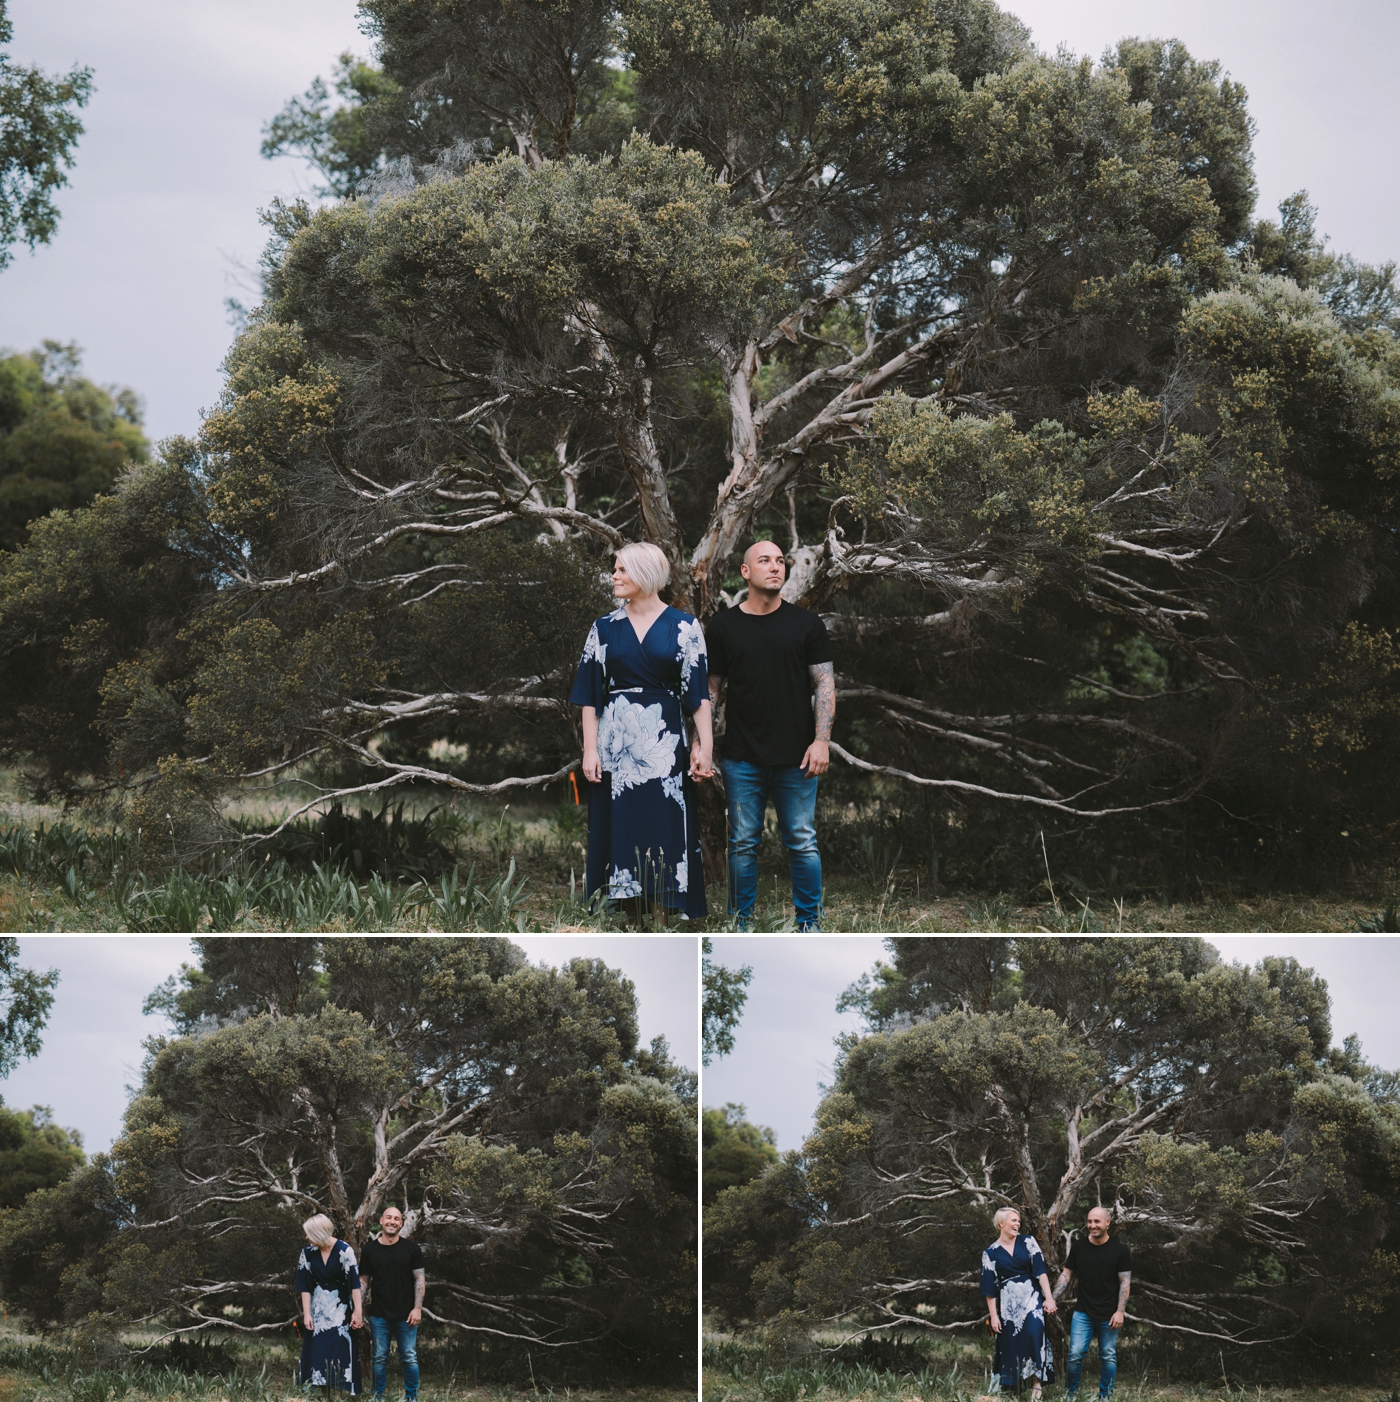 Georgia and Chris - Natural engagement photographer in Adelaide - www.katherineschultzphotography.com 5